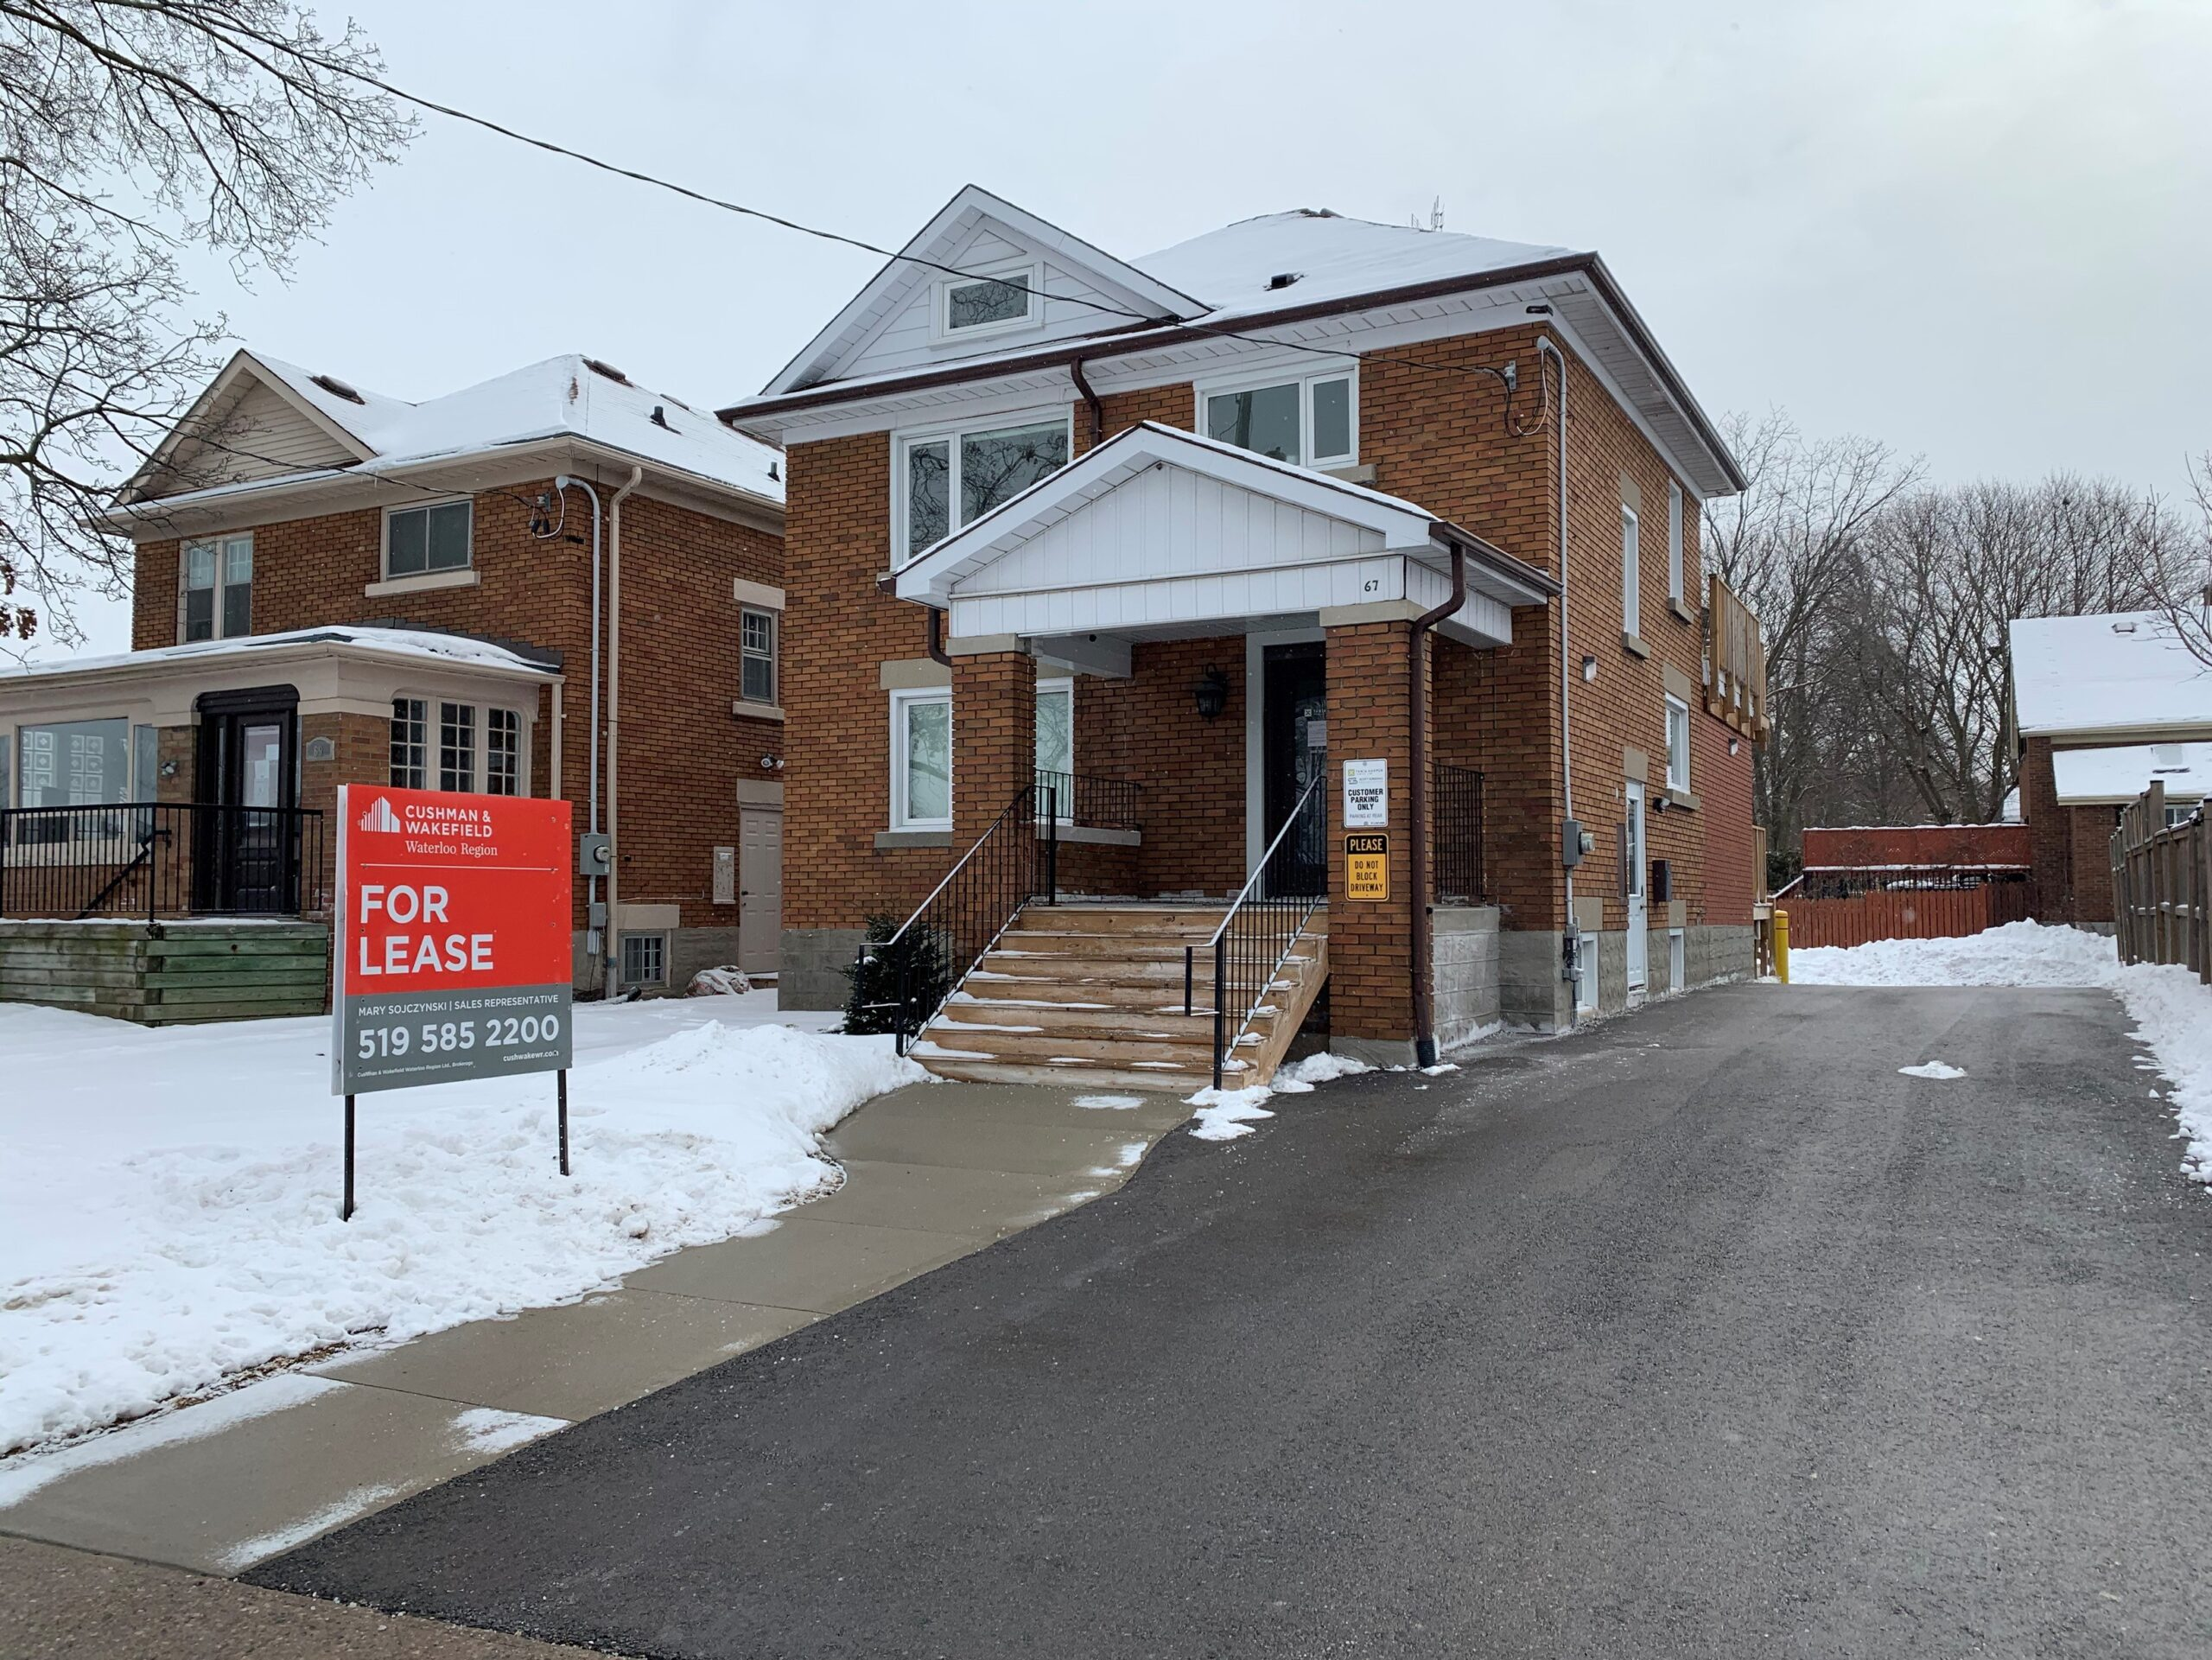 67 Bridgeport Rd E (Unit 2), Waterloo | Office Space for Lease